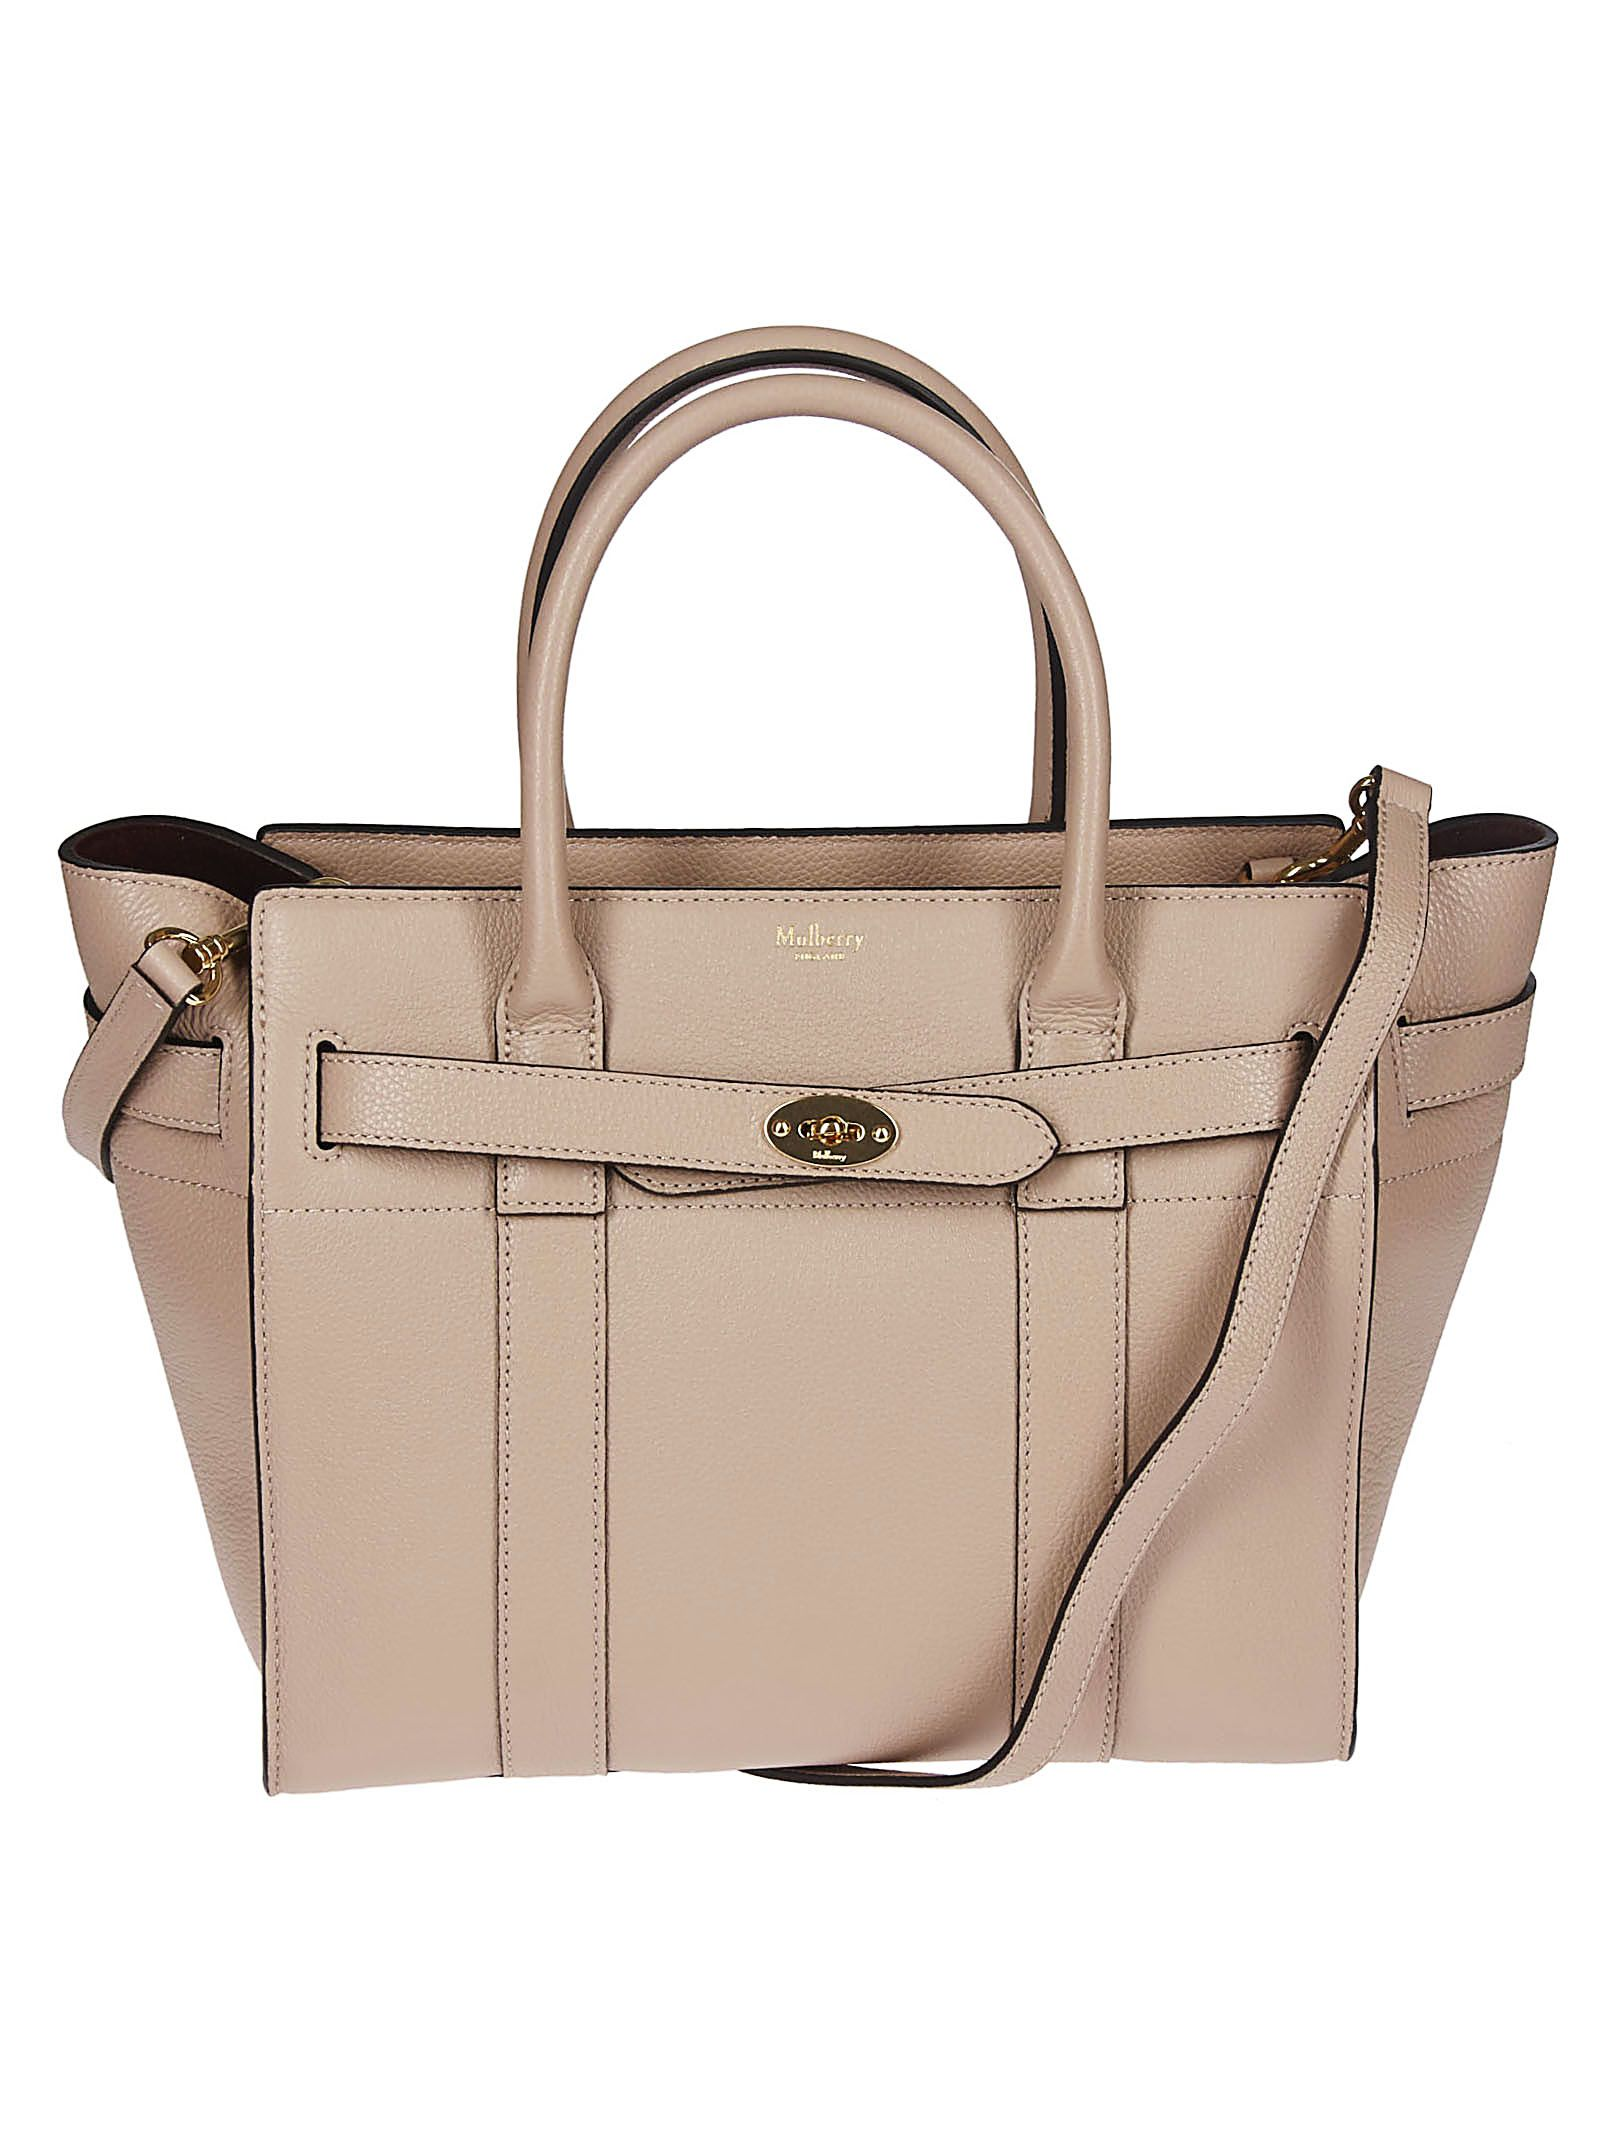 a3349c609a8c Mulberry Mulberry Small Zipped Bayswater Tote - Beige - 10829620 ...